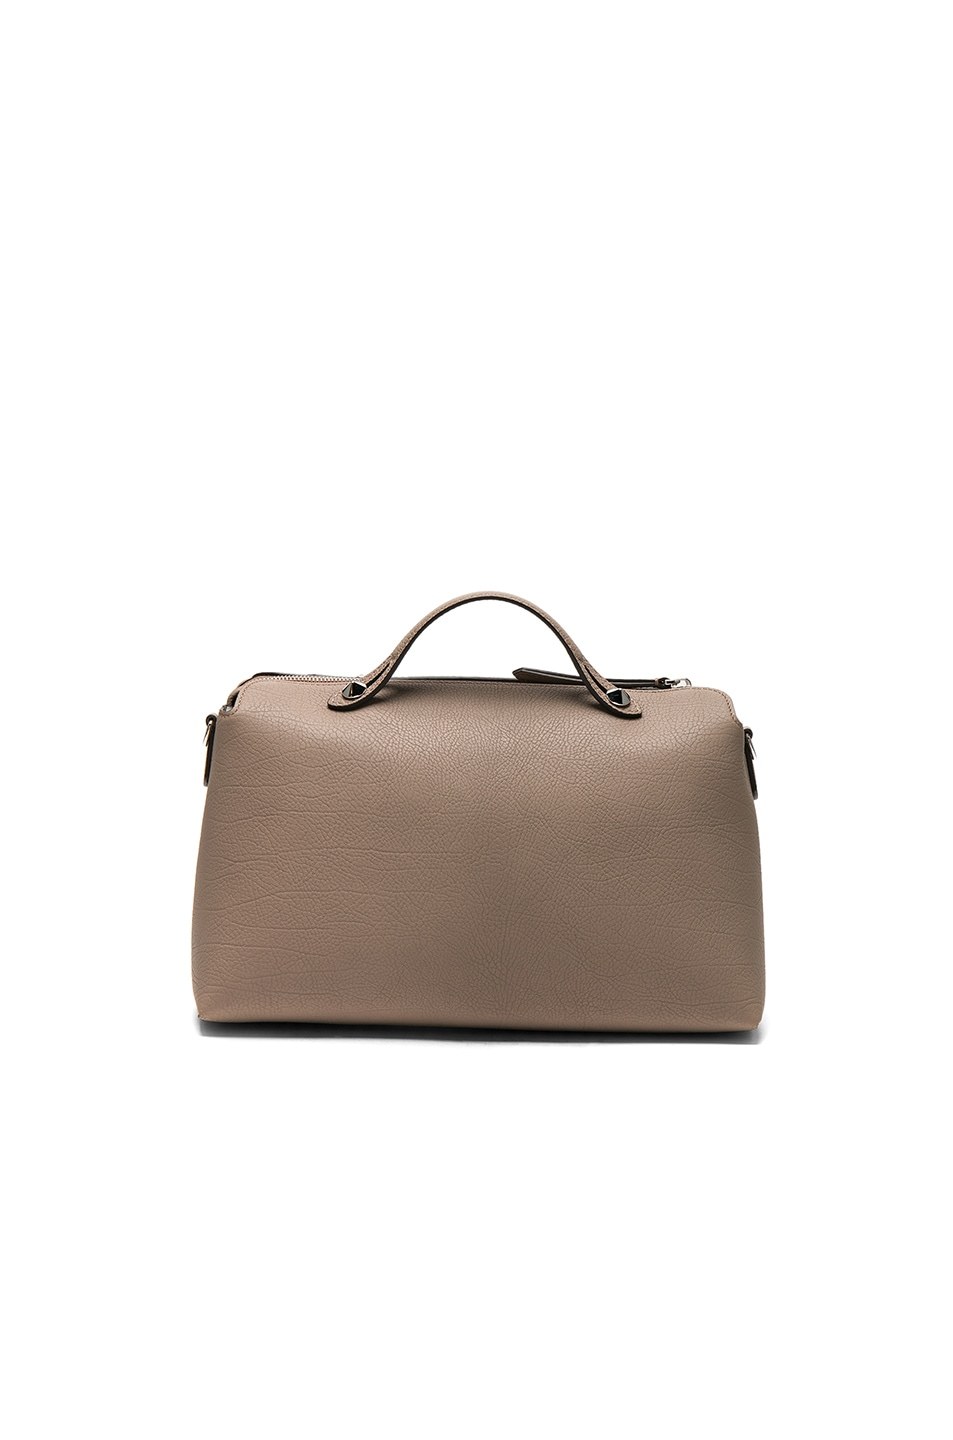 e1ffd0d98db9 Image 2 of Fendi Large By The Way Boston Bag in Dove   Palladium